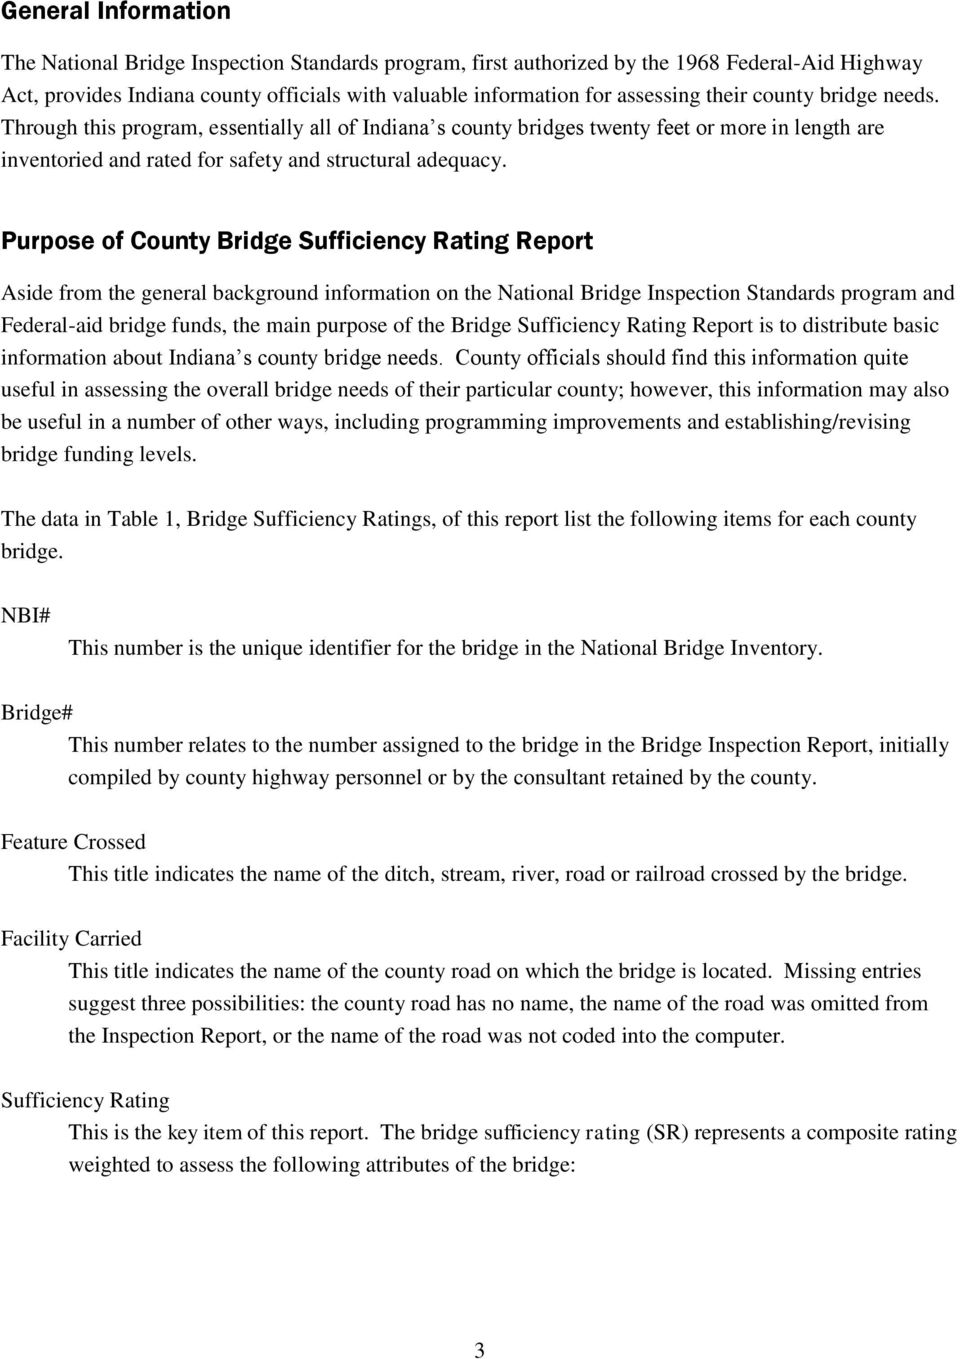 Purpose of County Bridge Sufficiency Rating Report Aside from the general background information on the National Bridge Inspection Standards program and Federal-aid bridge funds, the main purpose of